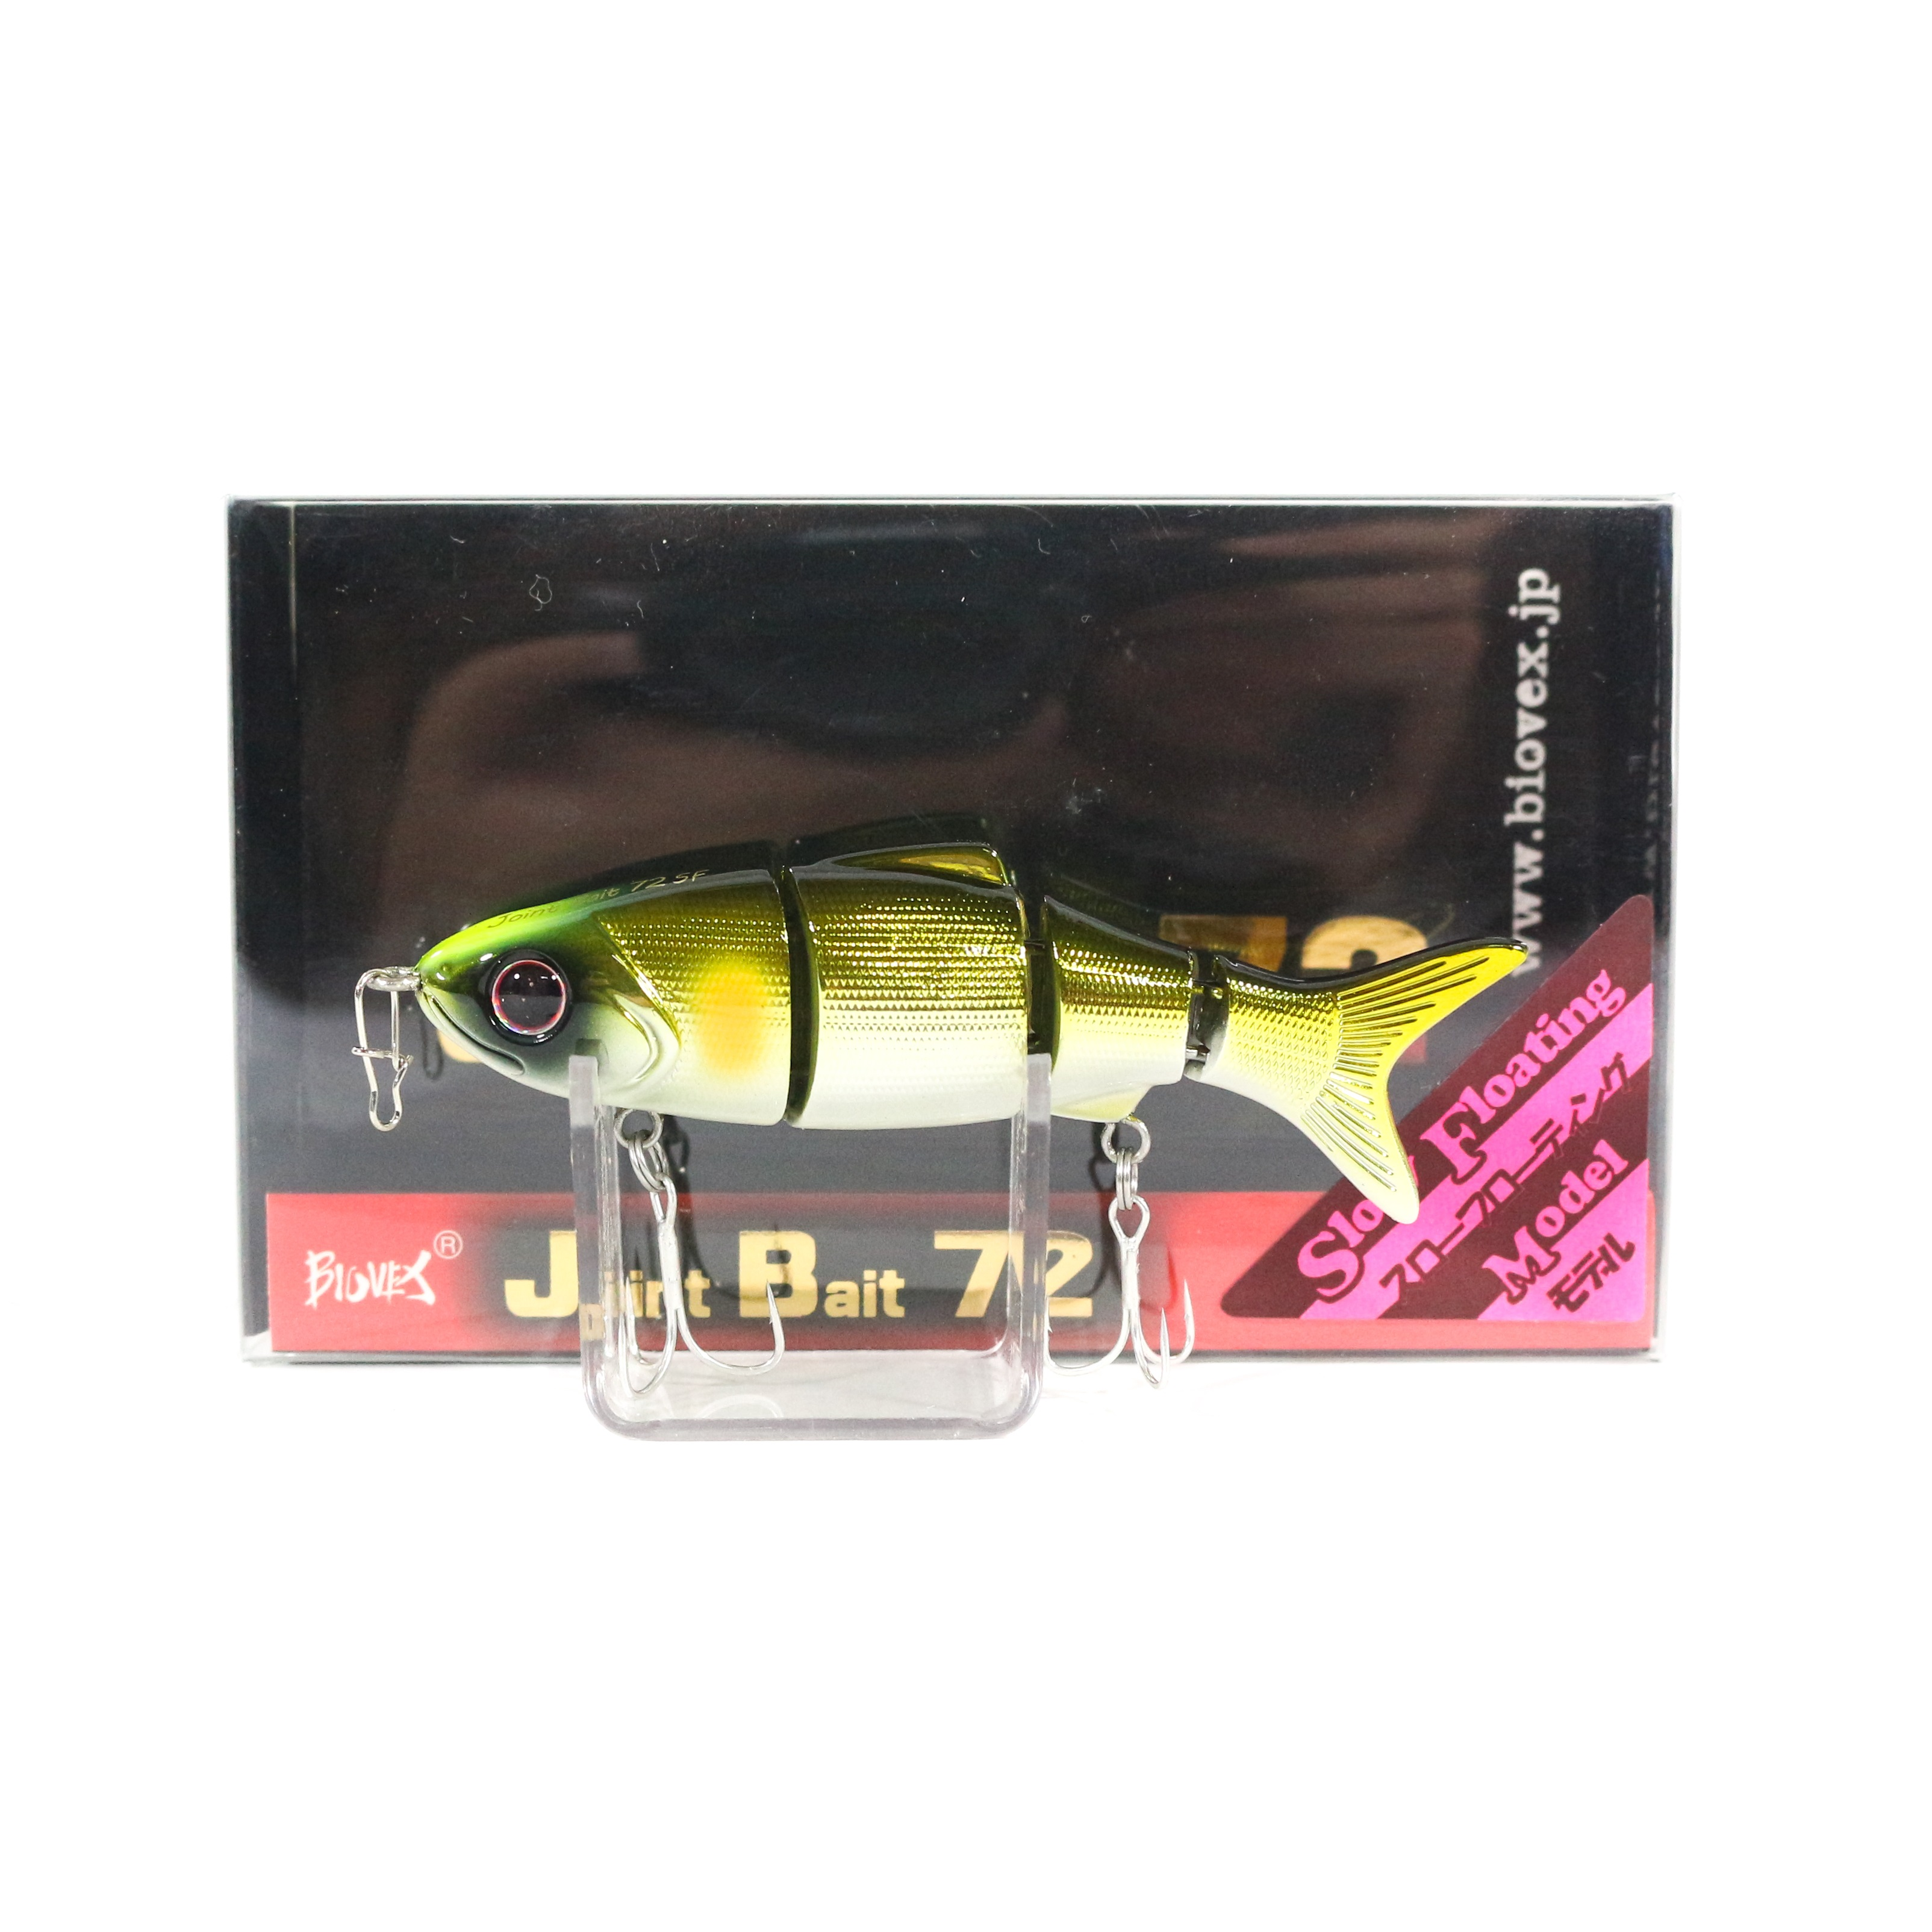 Biovex Joint Bait 72SF Flat Side Slow Floating Lure 21 (3307)